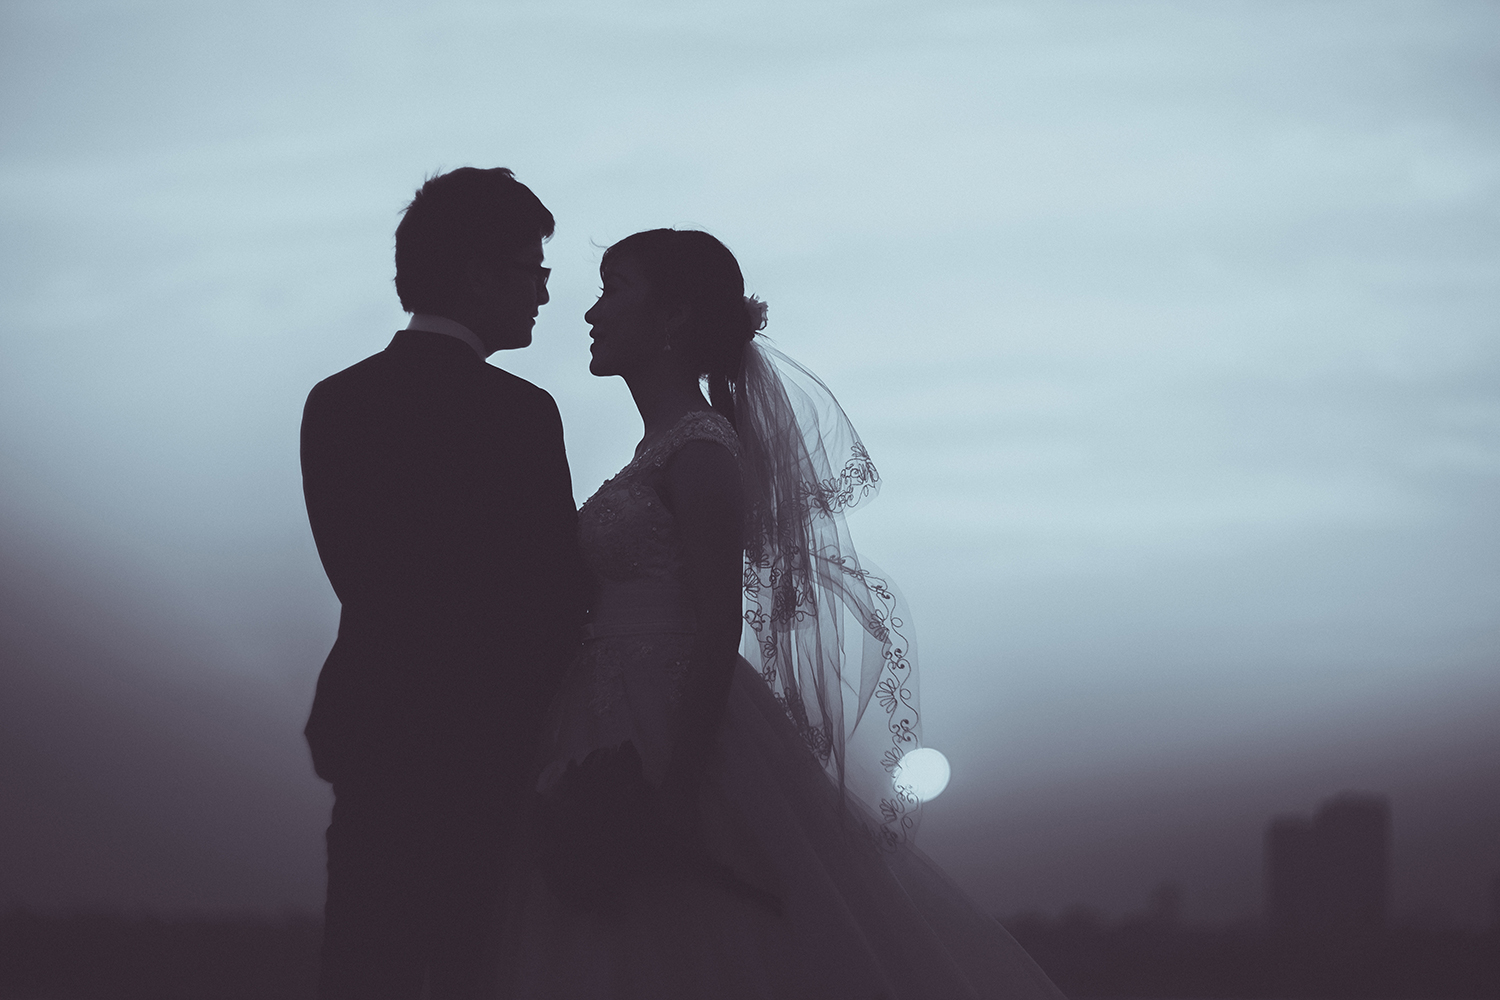 Bride and Groom at Dusk Embracing